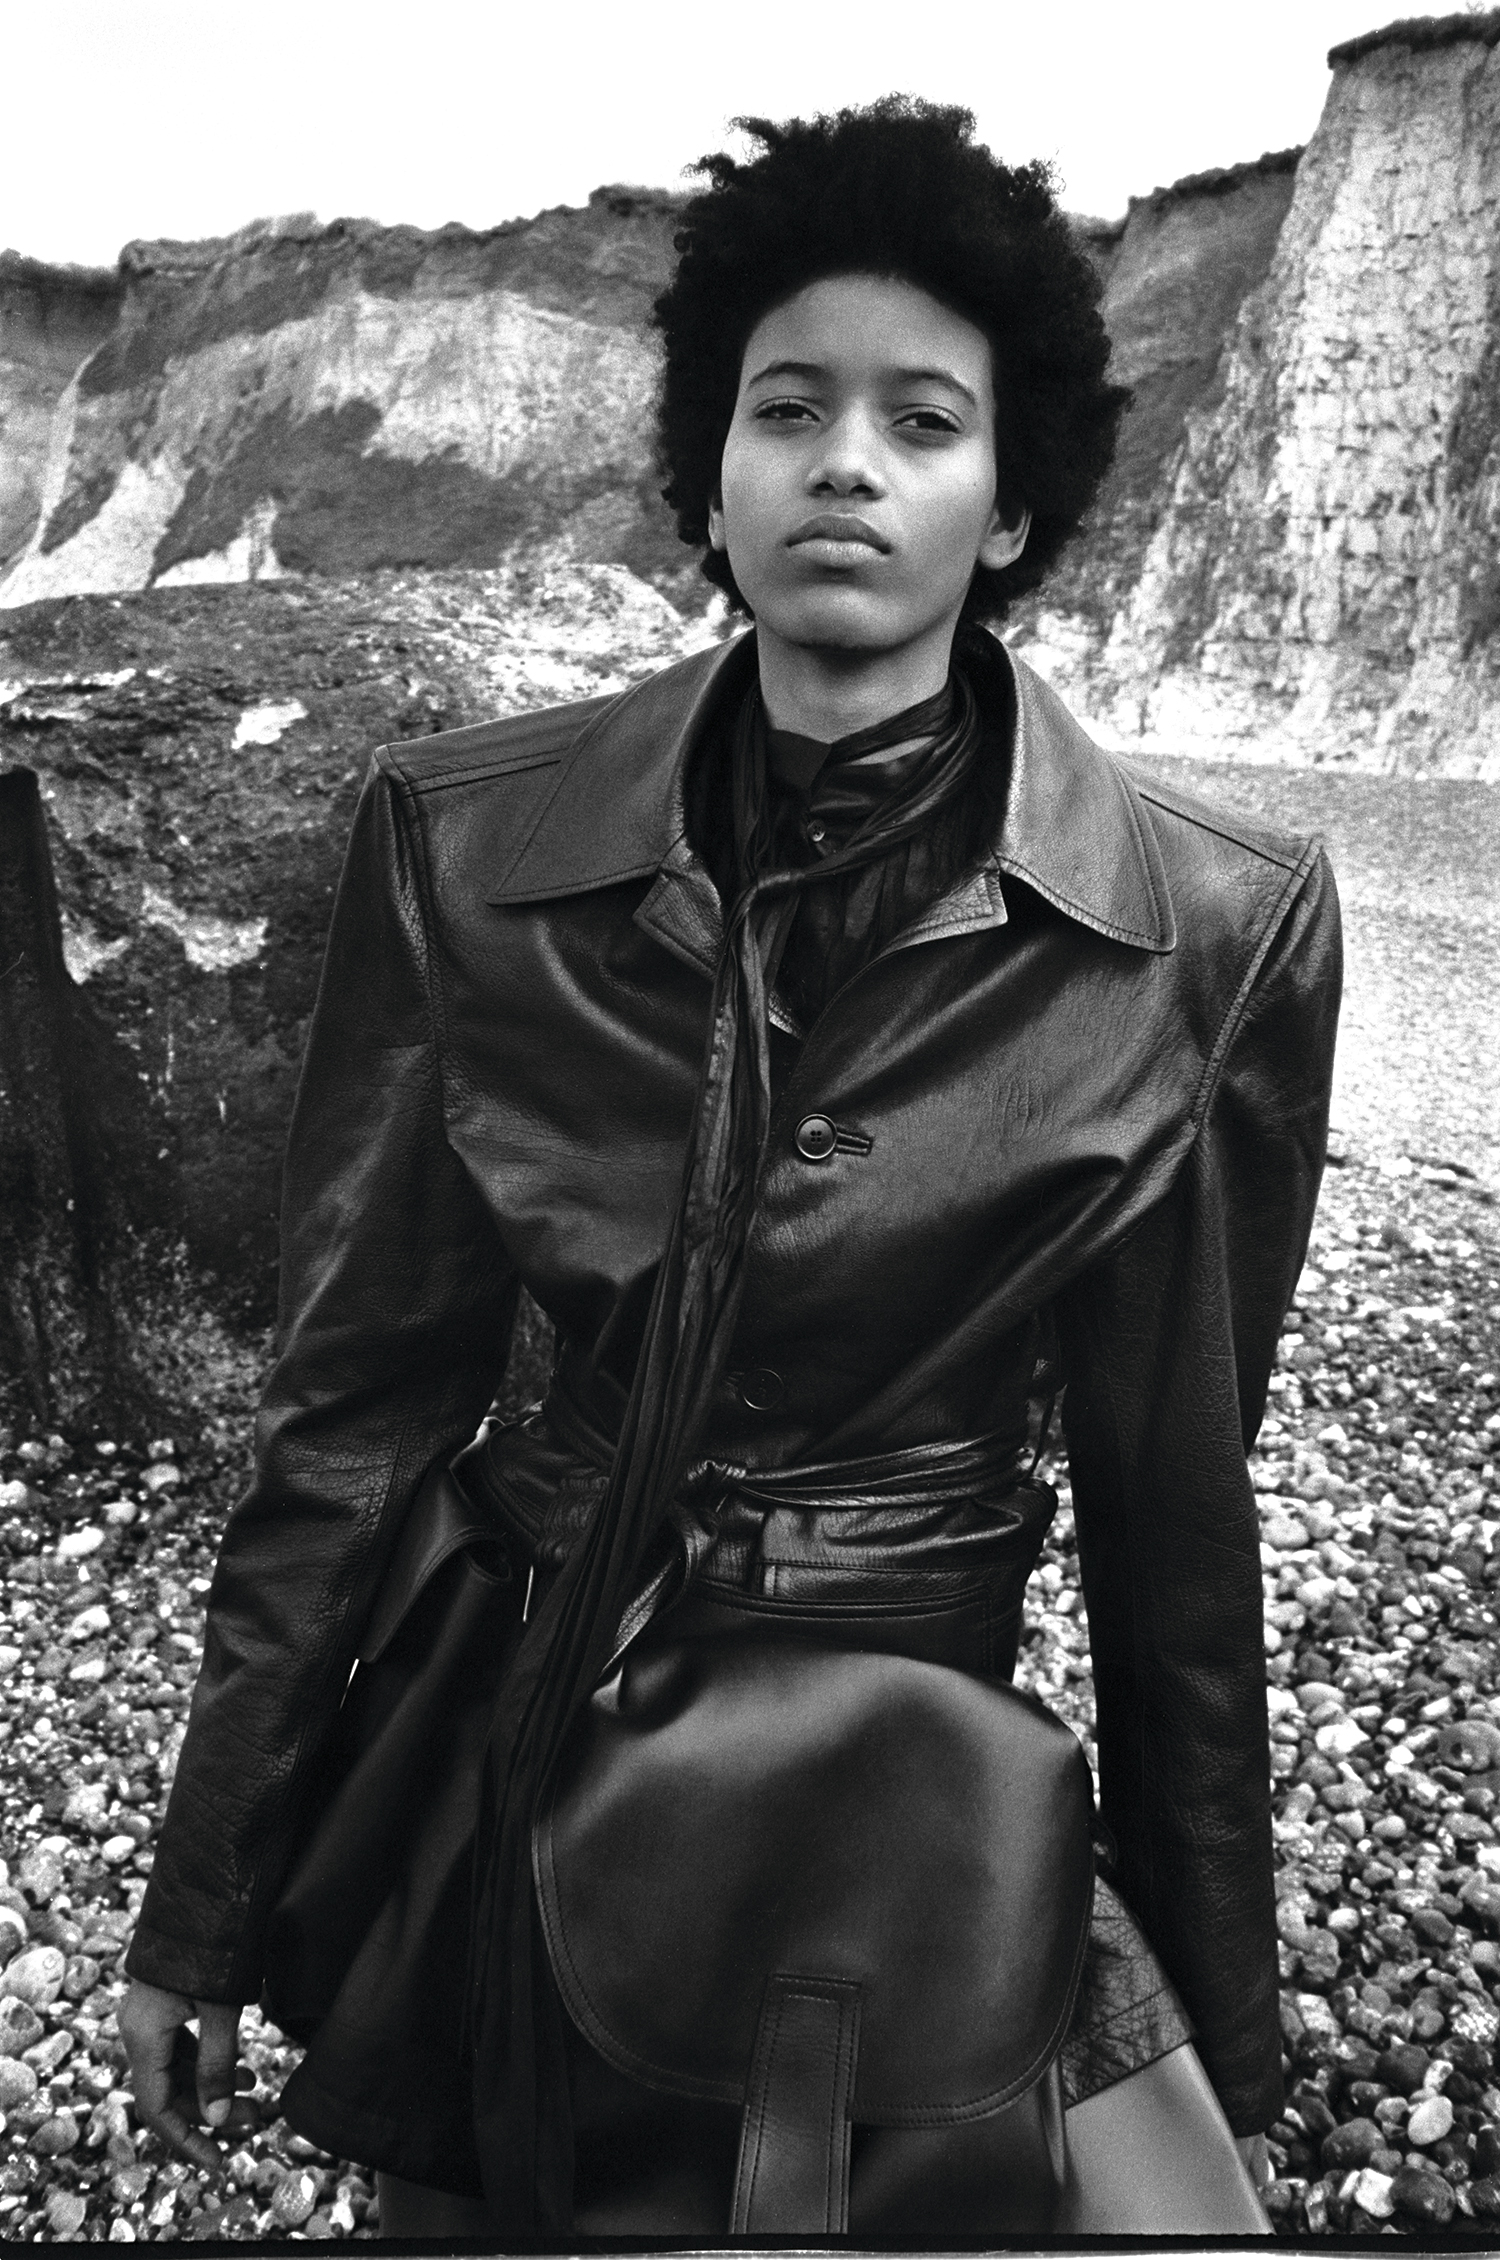 Coat & boots by Balenciaga, shirt by Dries Van Noten, belt with oversized pockets by Marni.